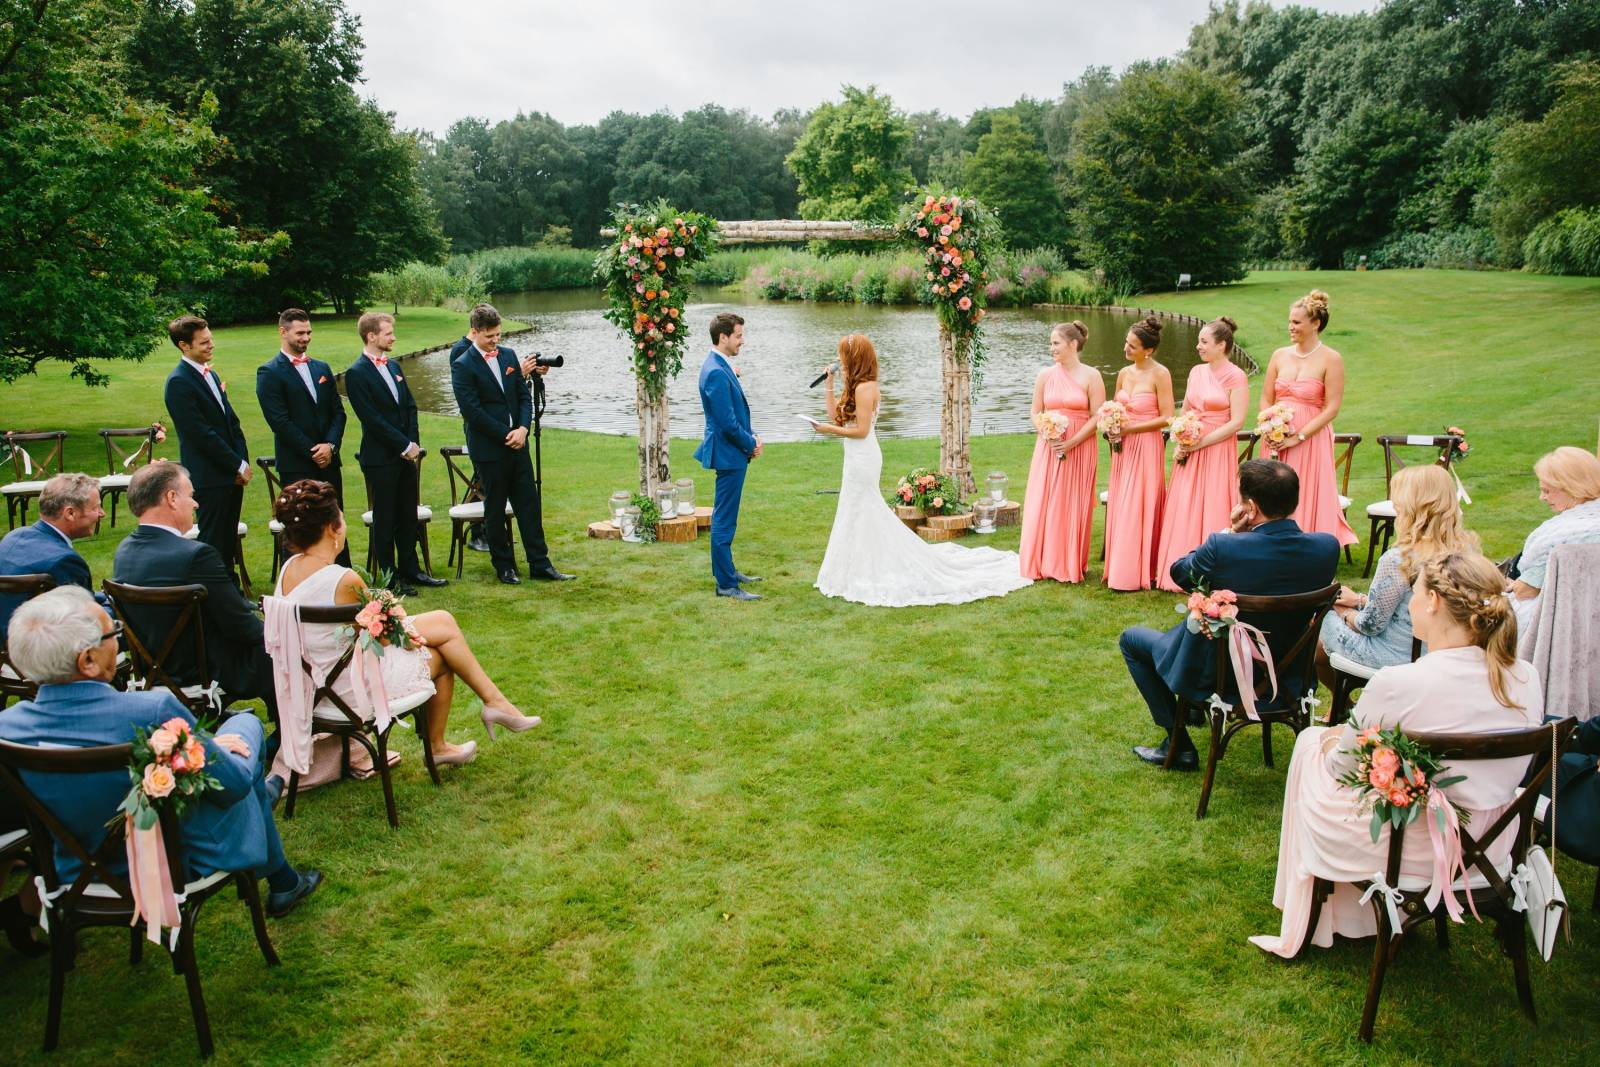 Tine De Donder - Huwelijksceremonie - Ceremoniespreker - huibvintgesphotography - House of Weddings 23